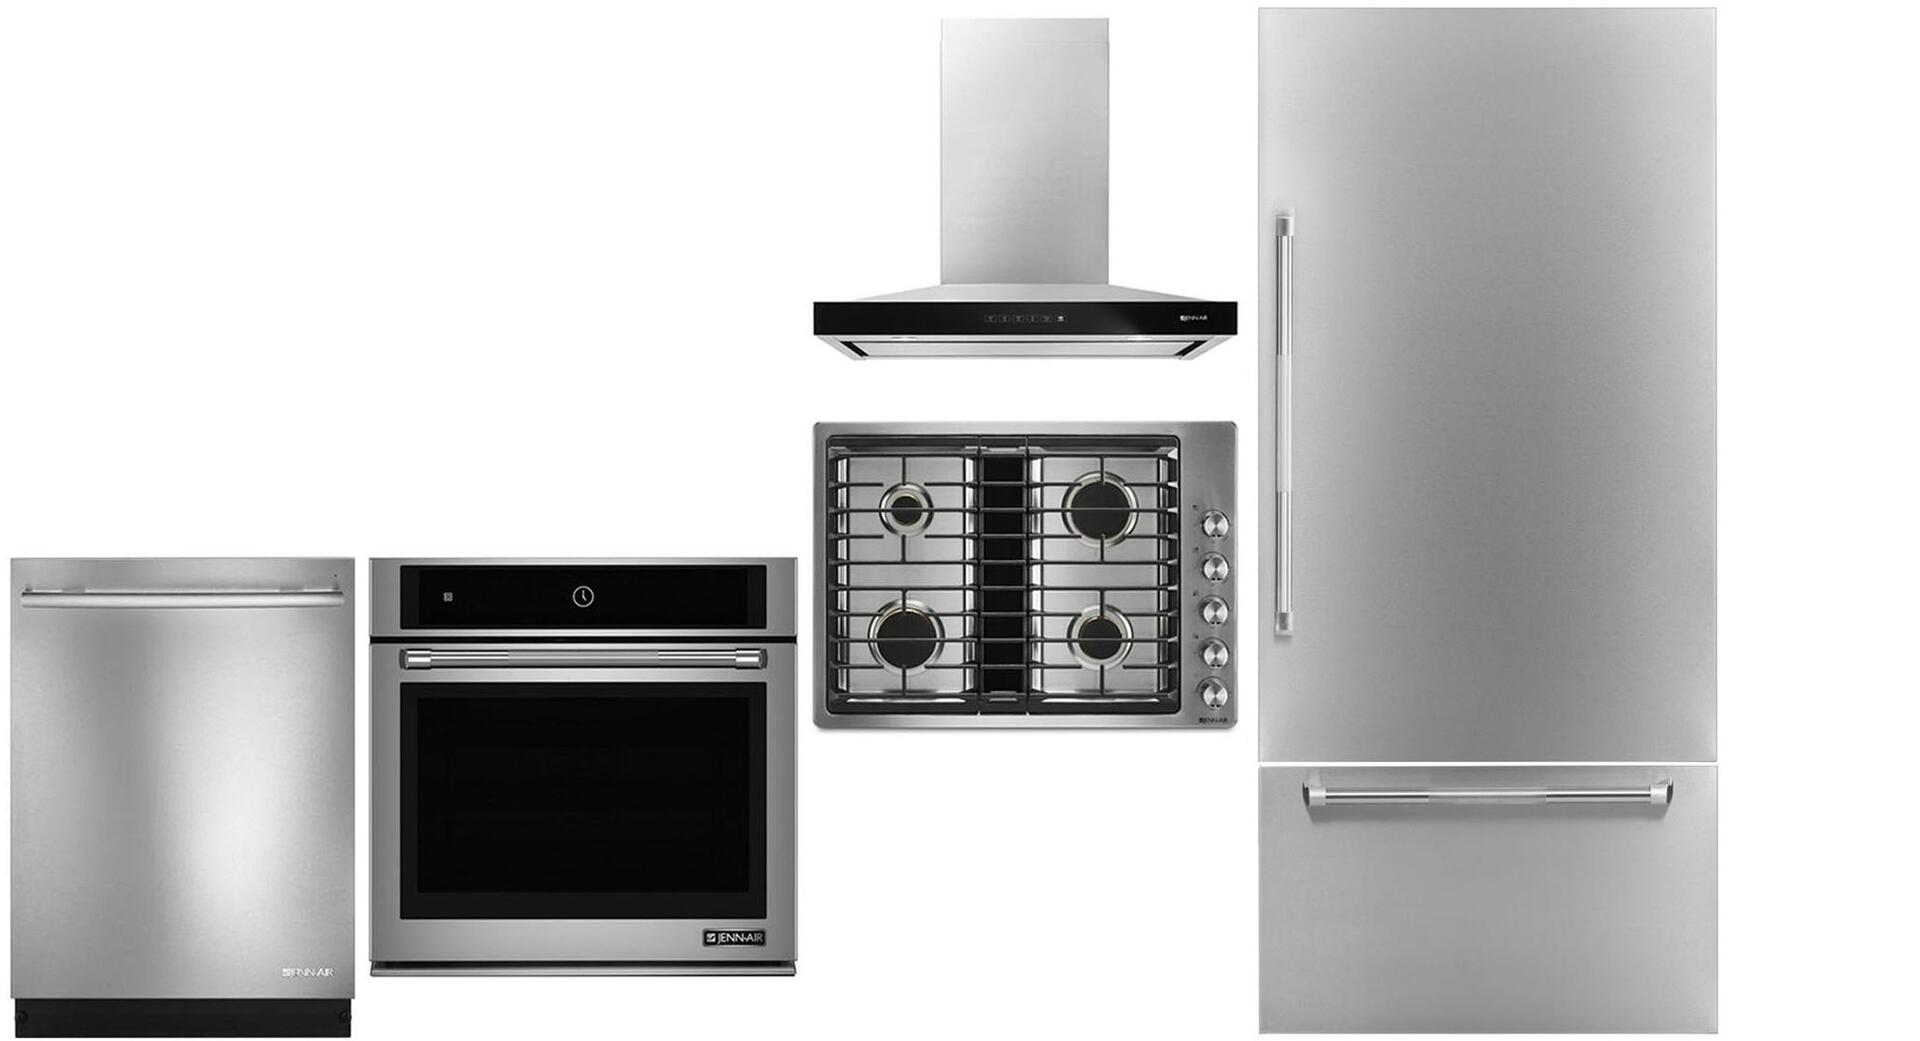 ge kitchen appliances packages, discount stainless steel appliance packages, bosch kitchen appliances packages, on gas kitchen appliance packages stainless steel